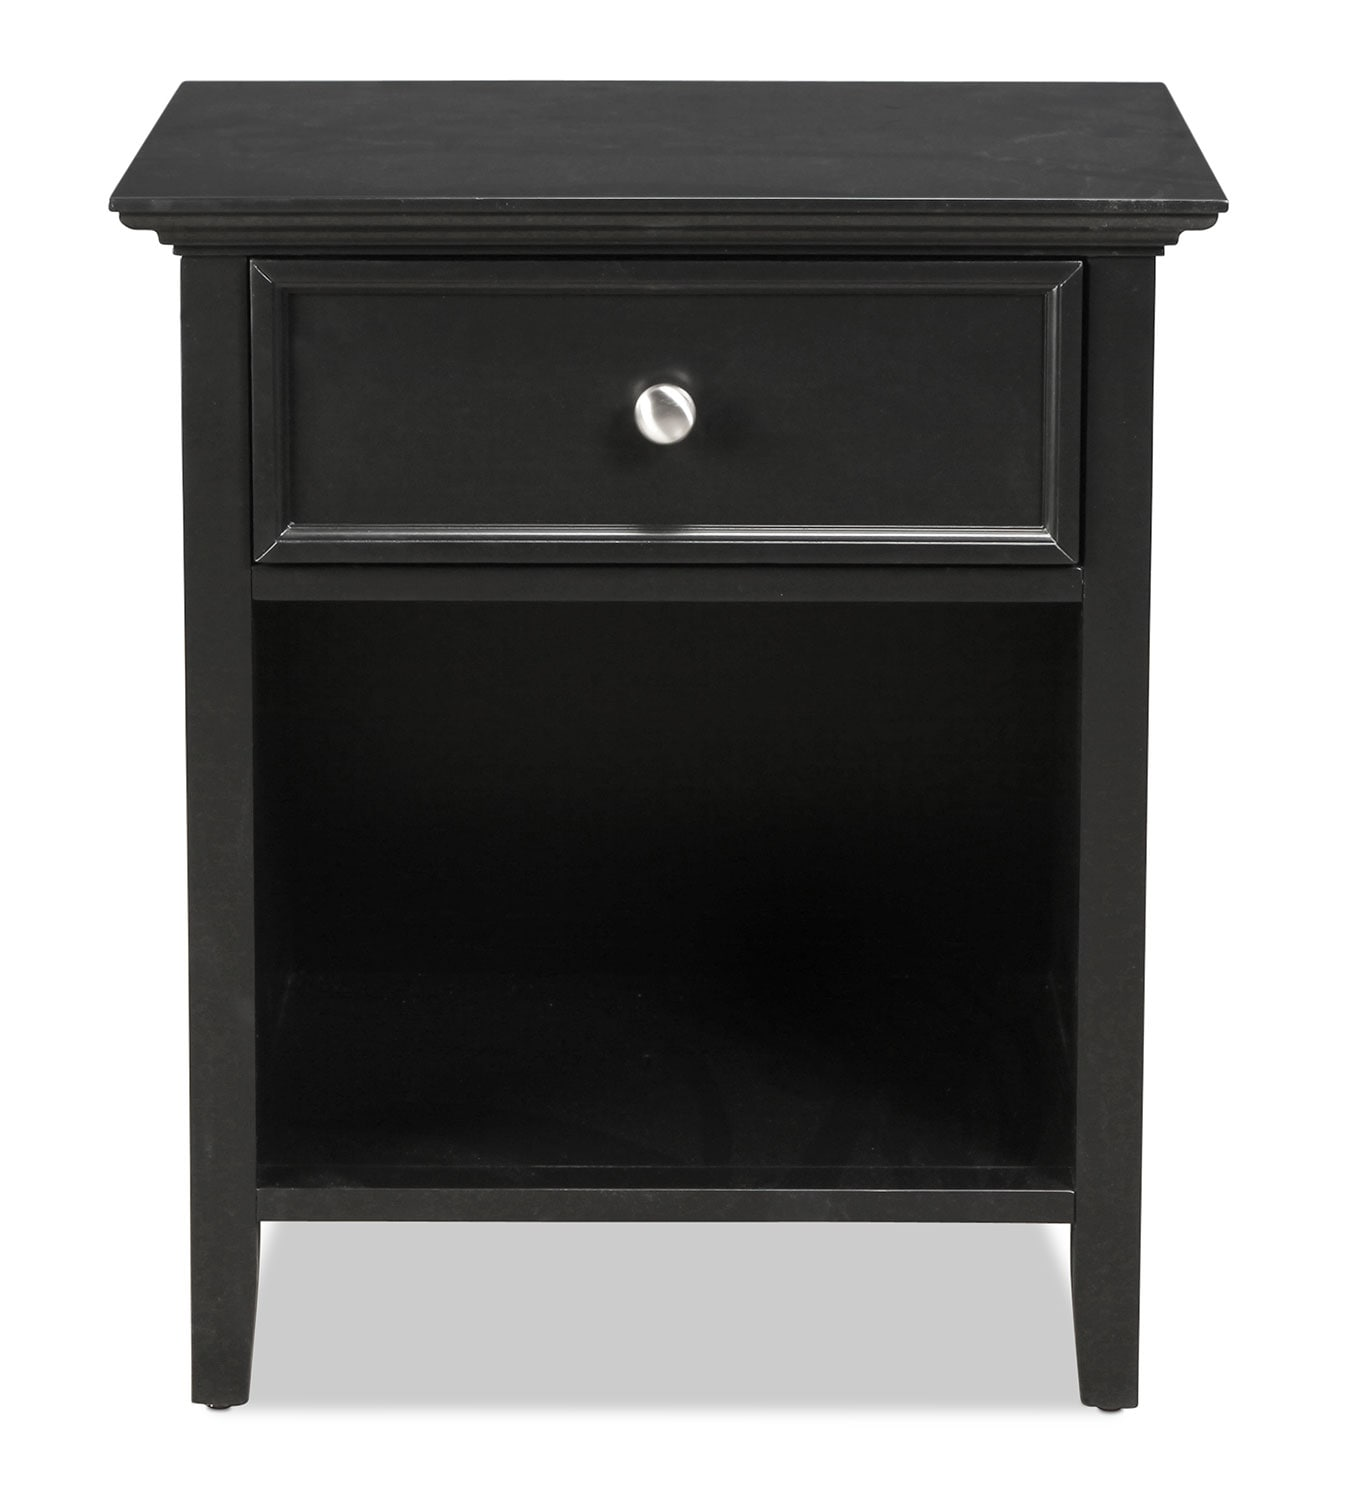 Bedroom Furniture - Ellsworth Nightstand - Black